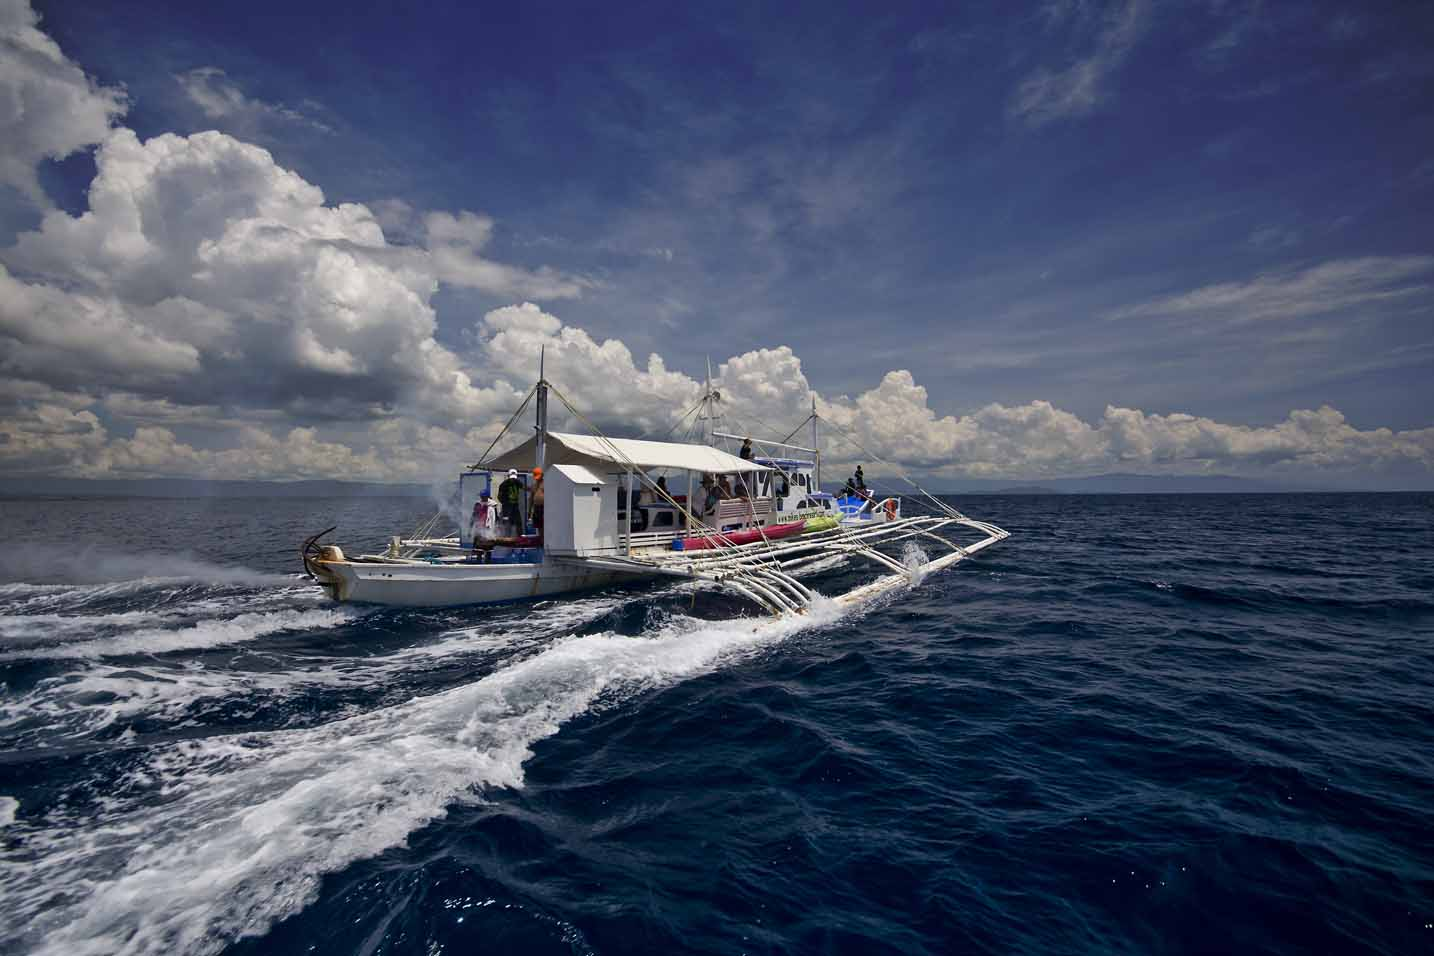 One of our two Banca dive boats